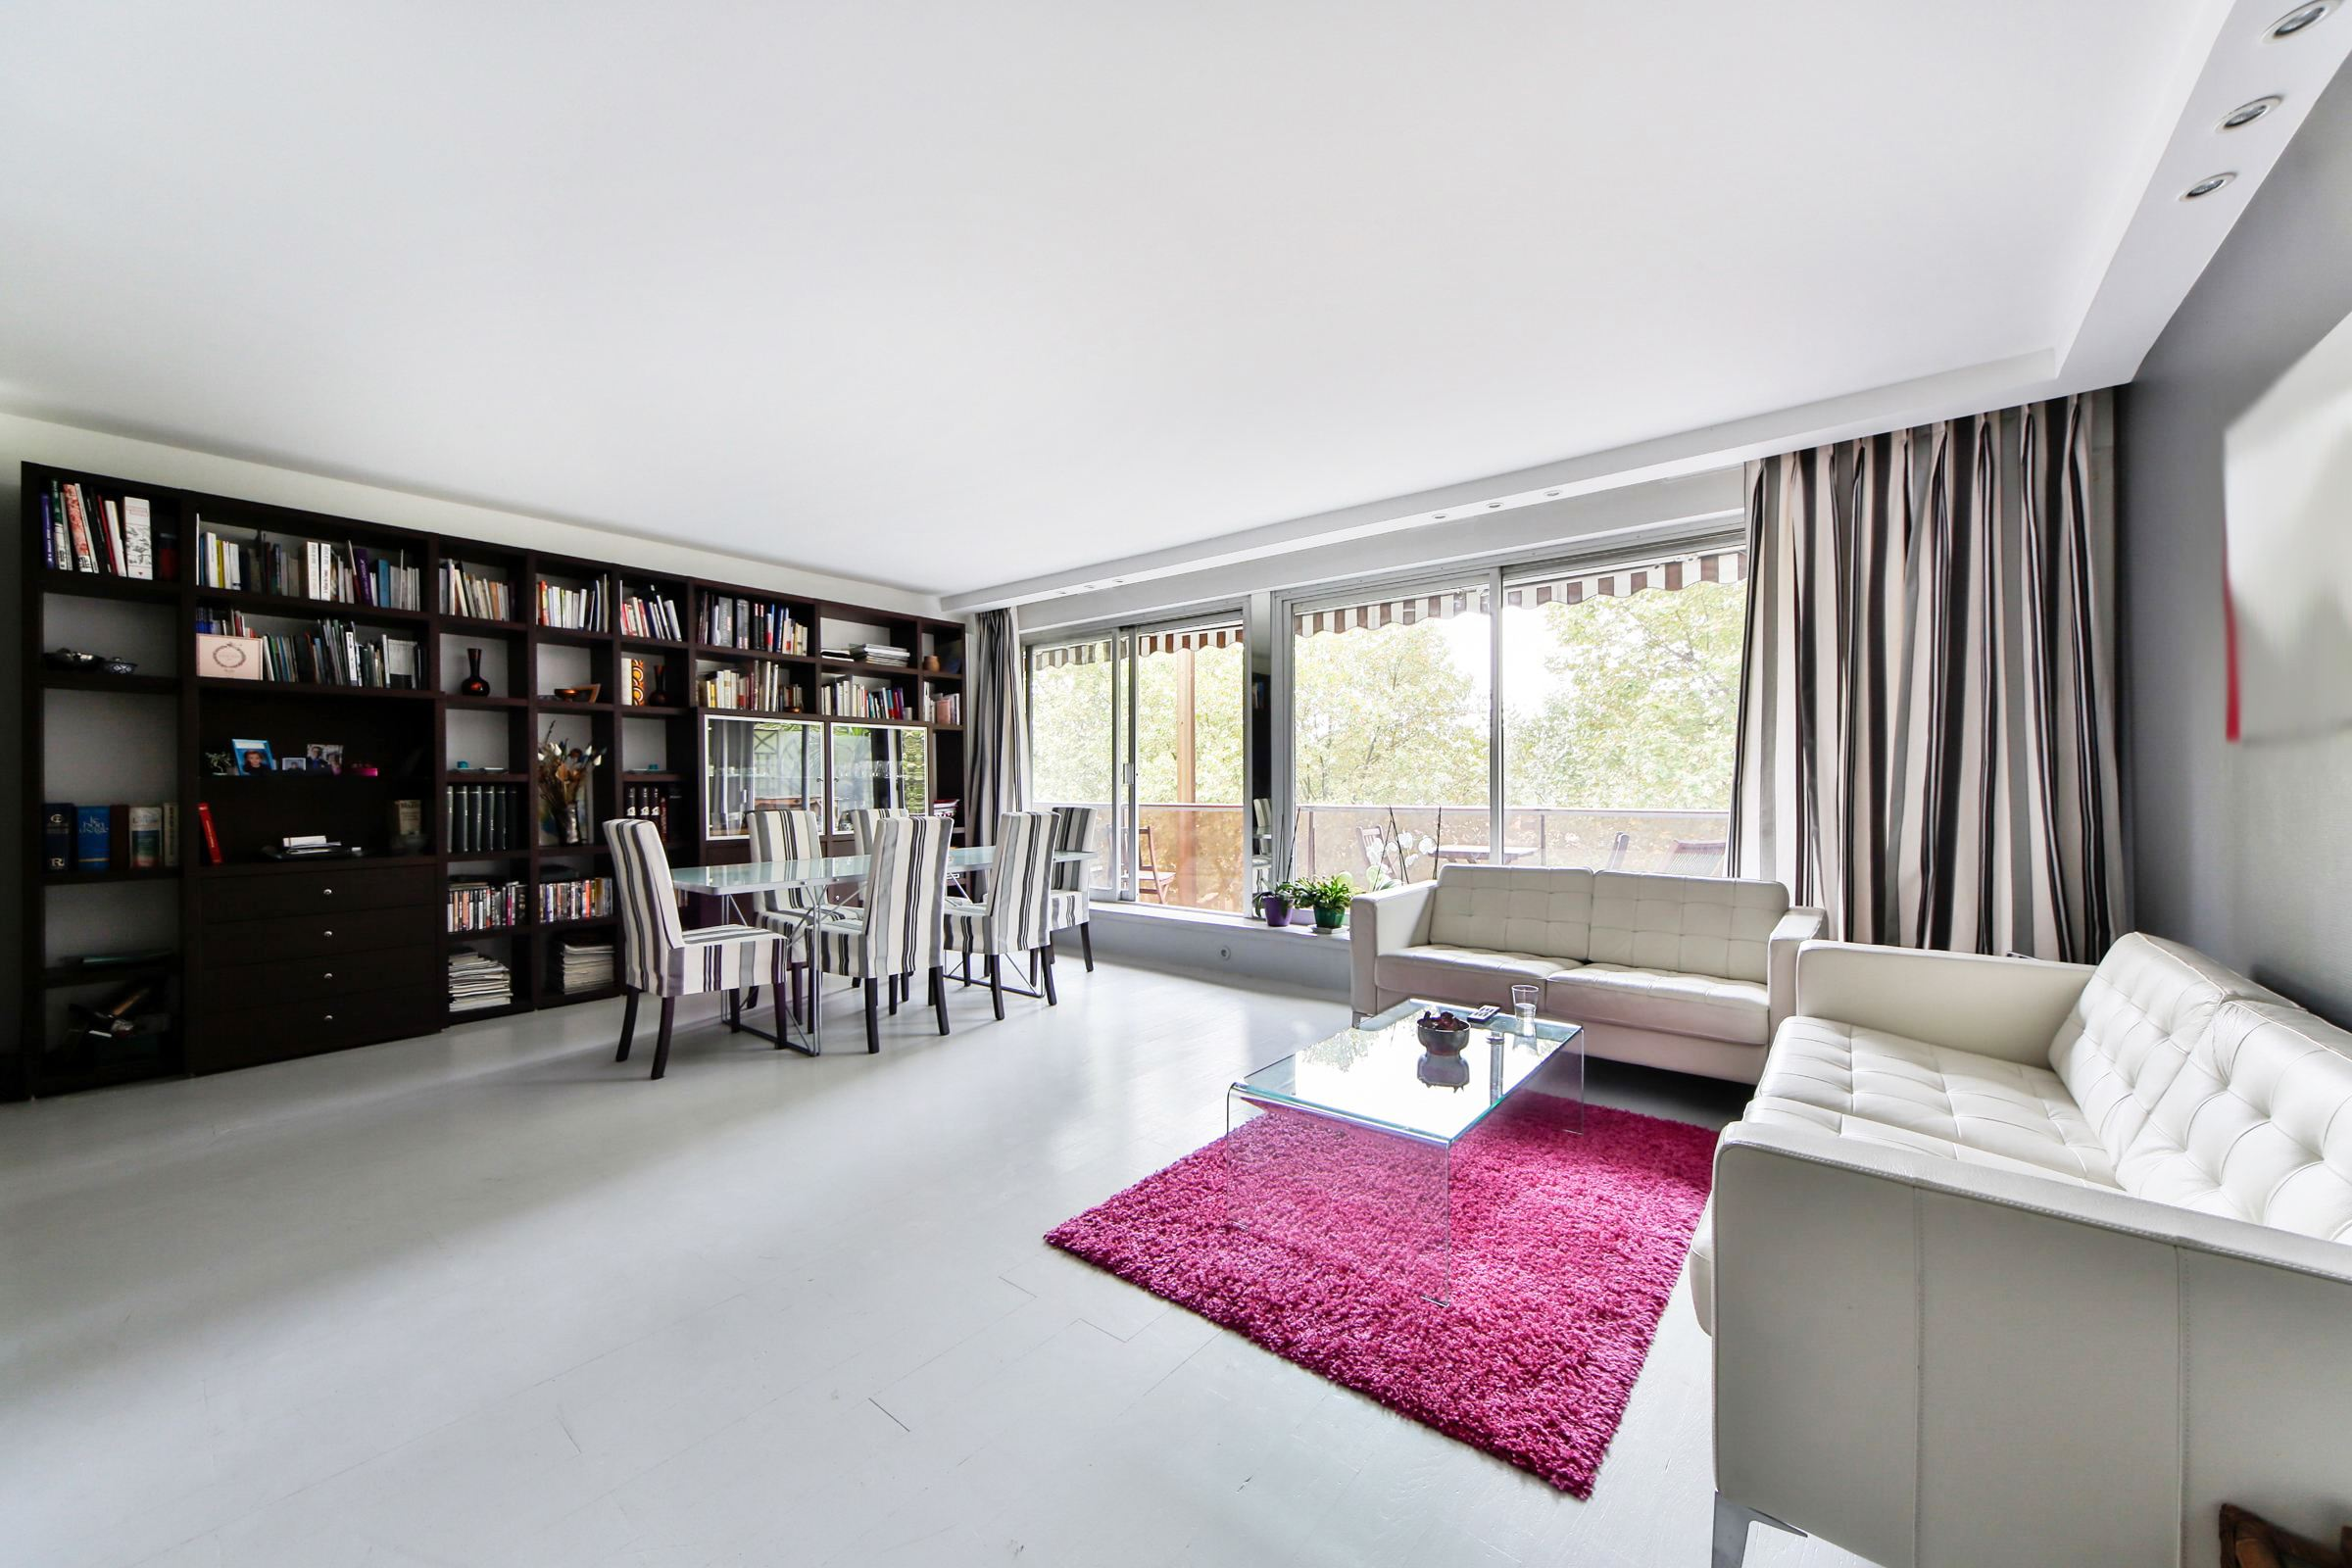 Property For Sale at Neuilly - Ile de la Jatte. A 112 sq.m apartment with balcony.